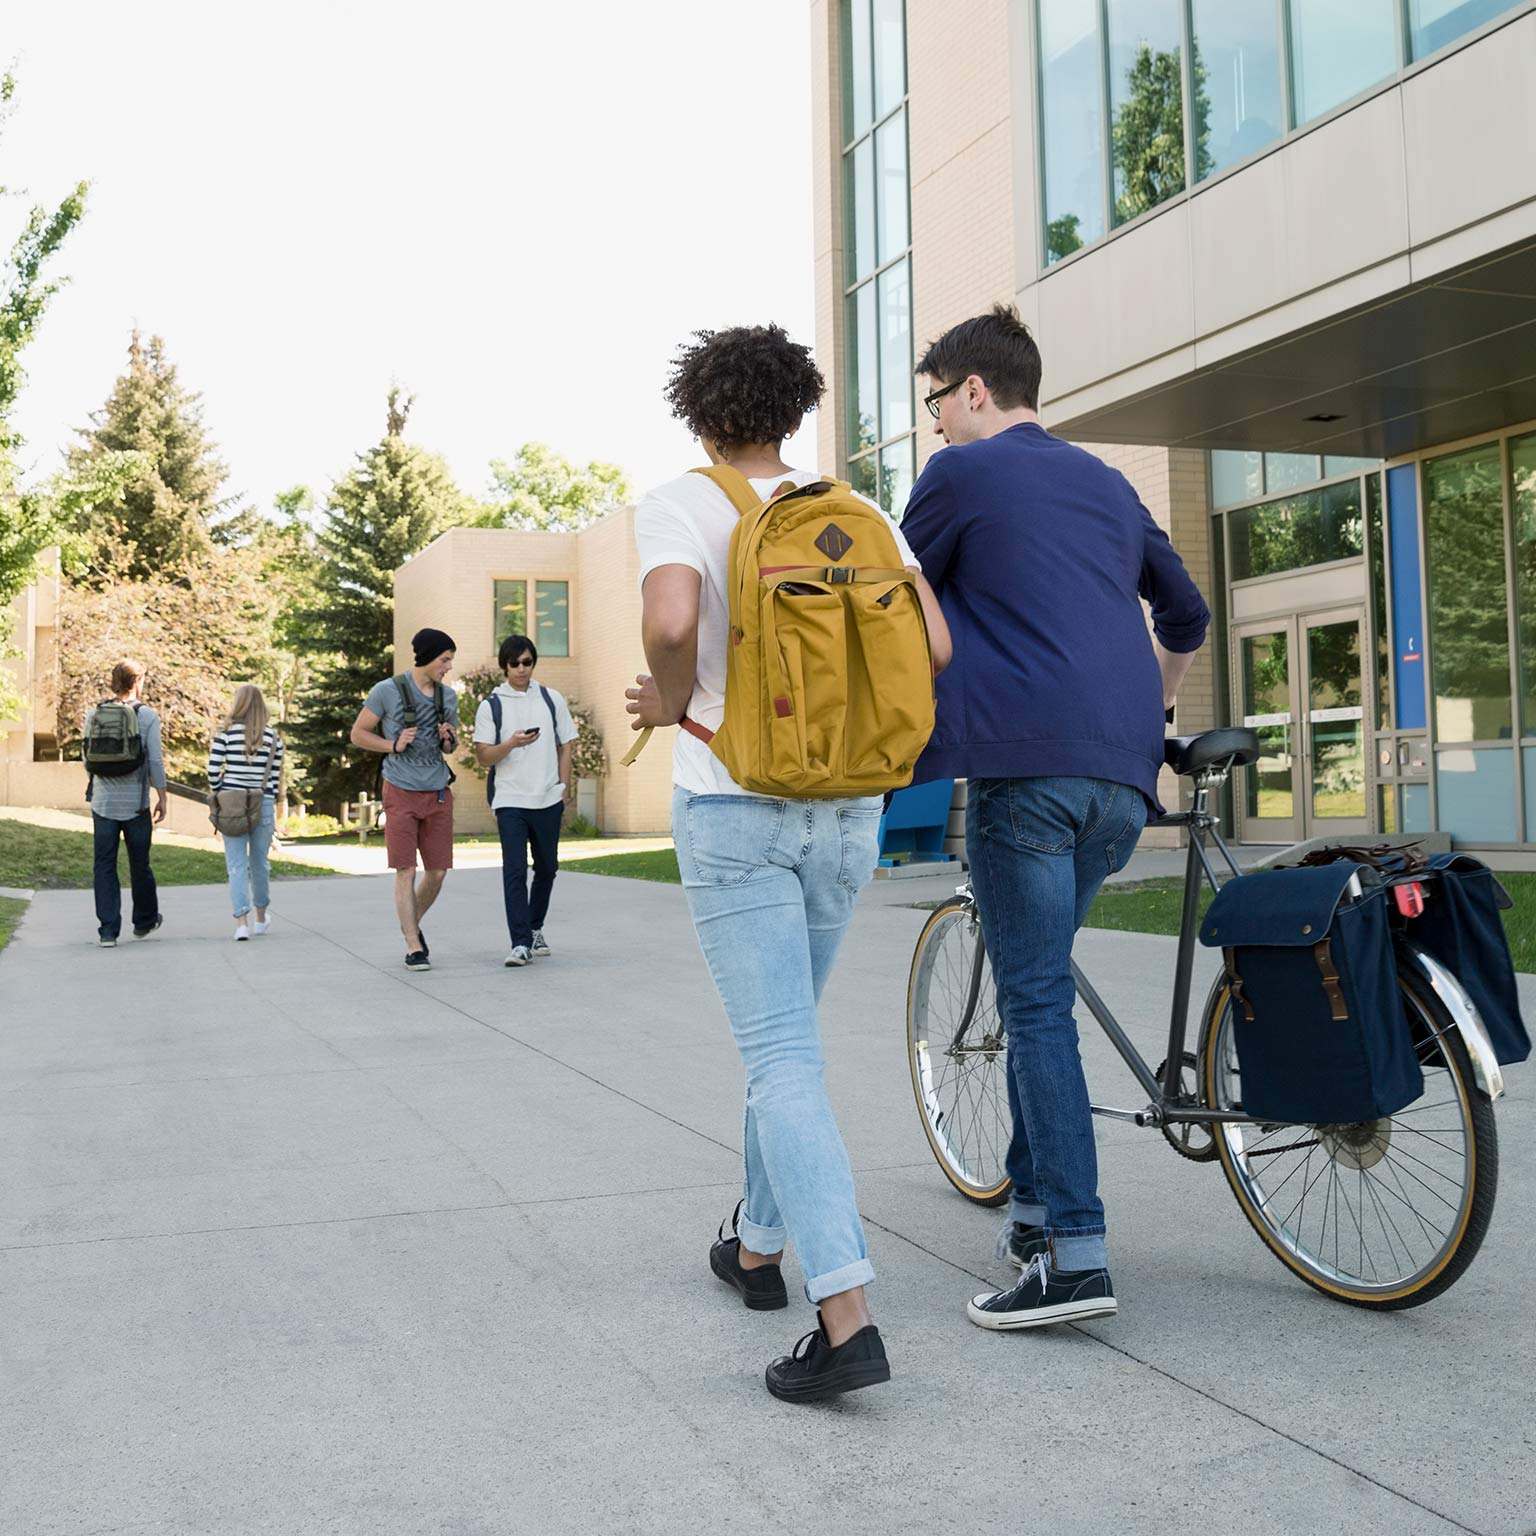 Shaking up the leadership model in higher education